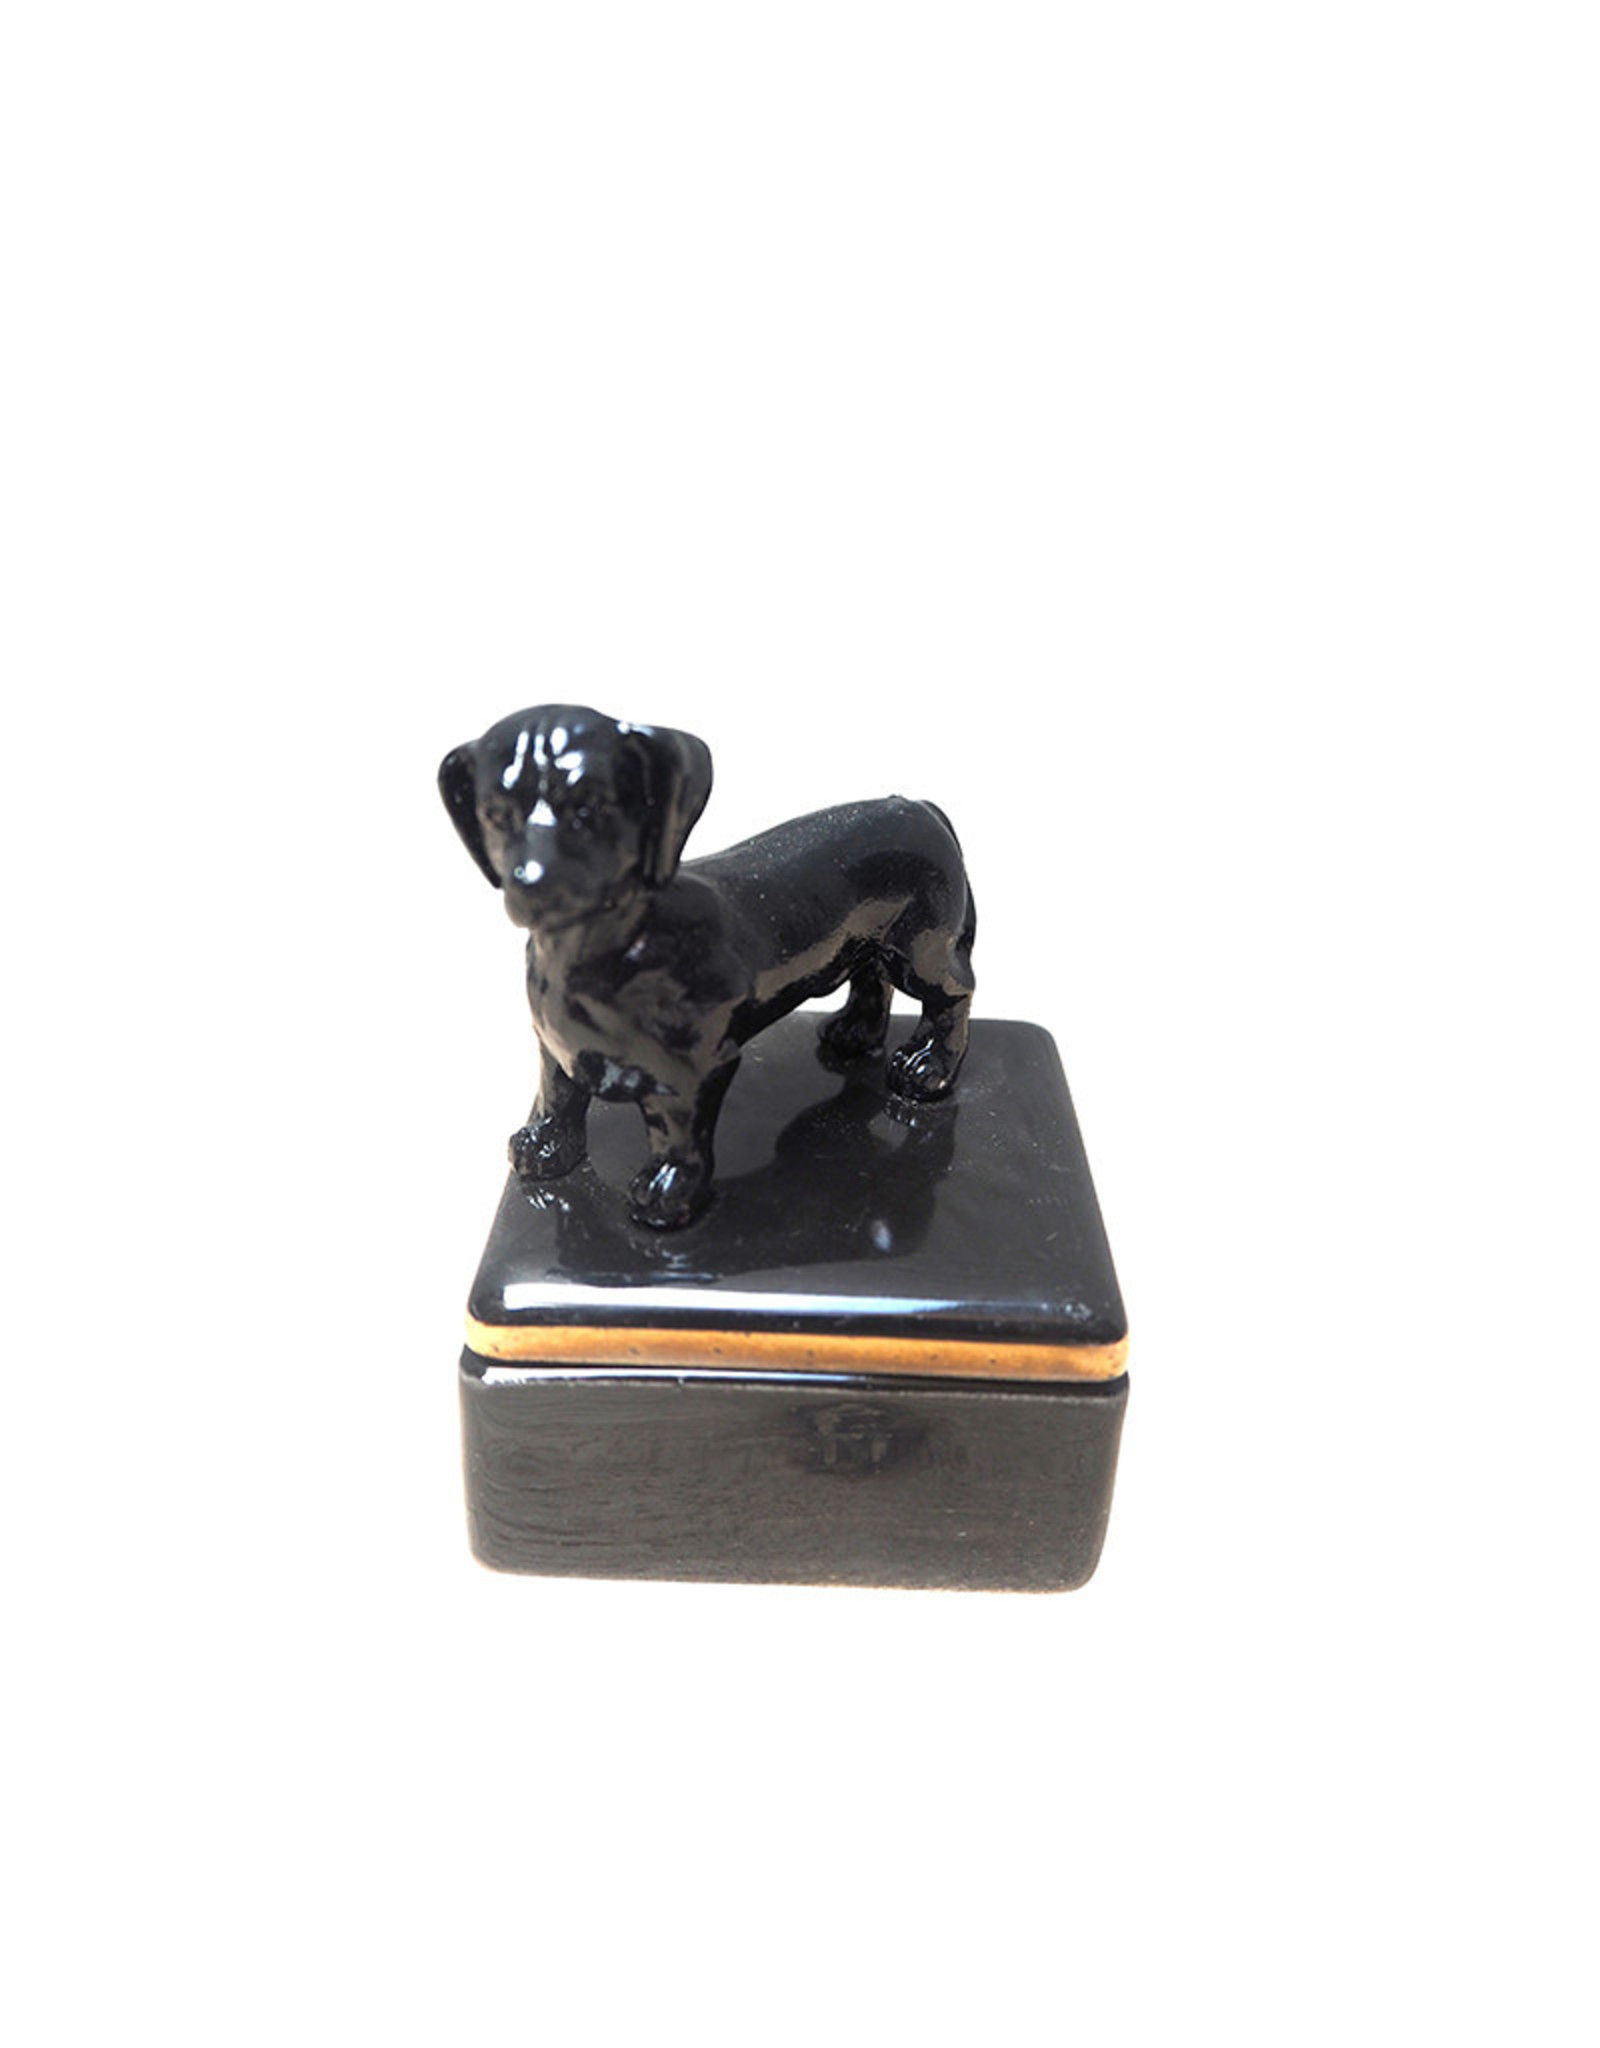 Mini ceramic box with black dog